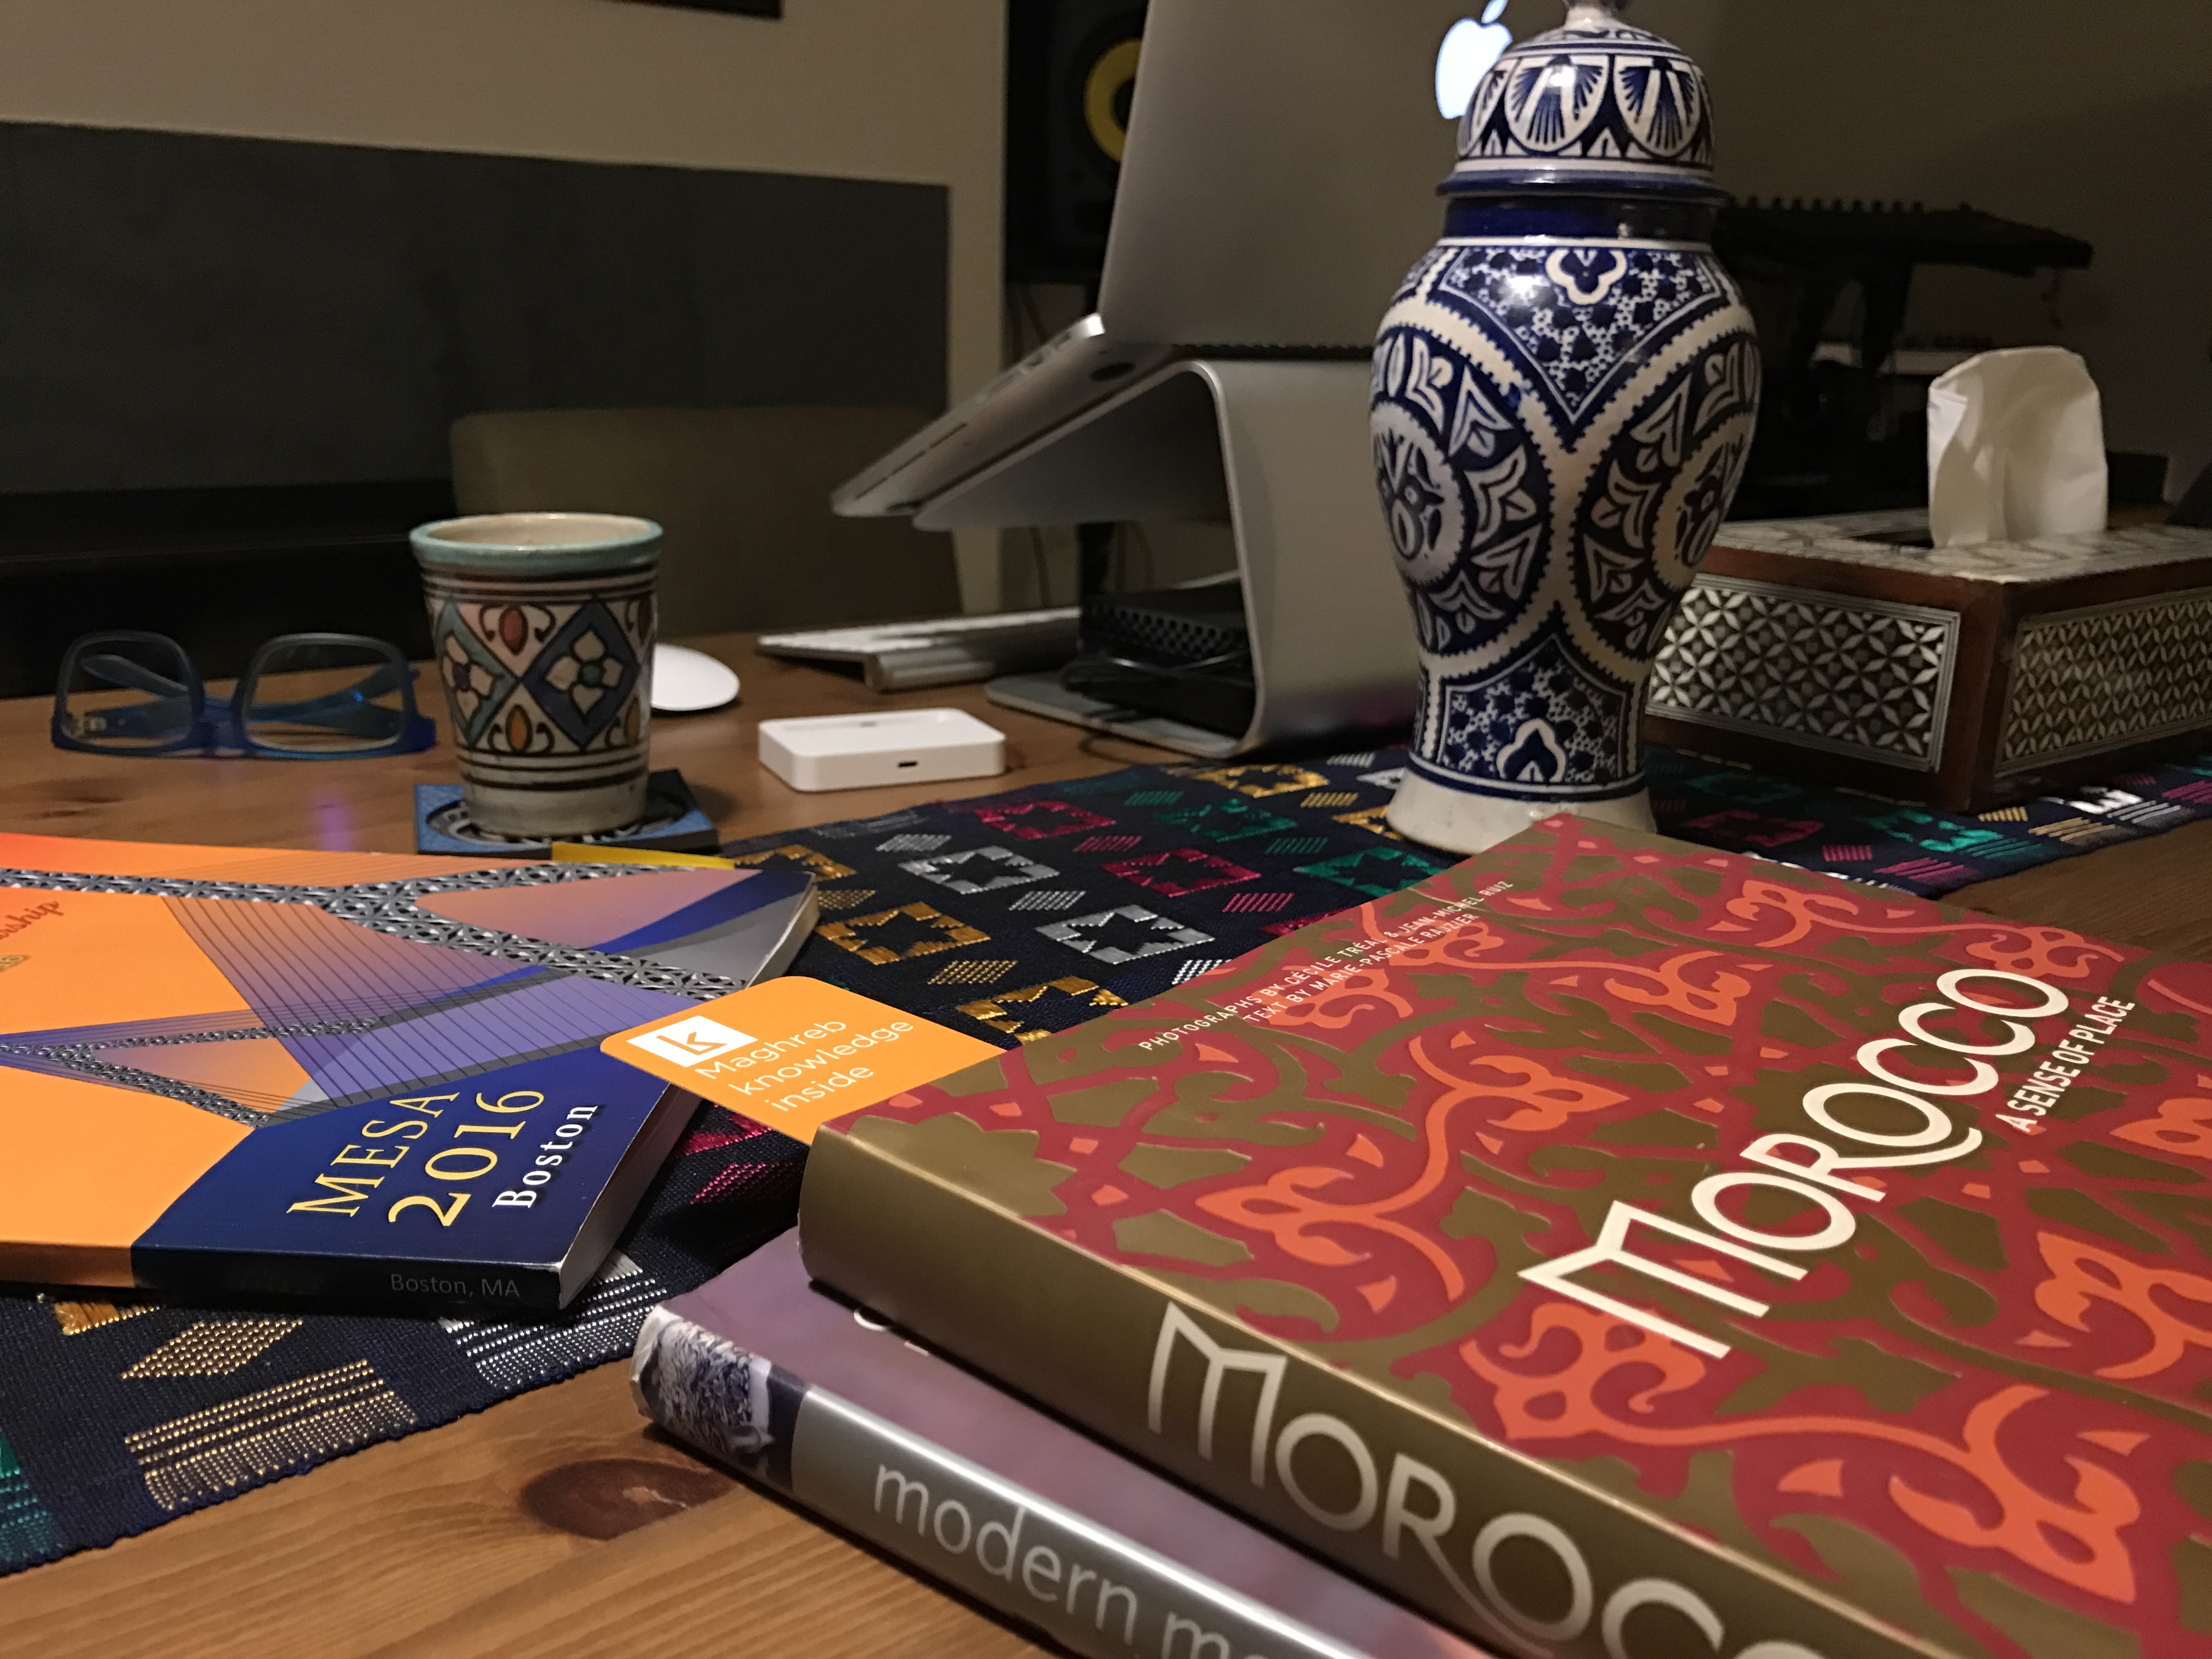 Ketabook helps readers and scholars find books published in the Maghreb.